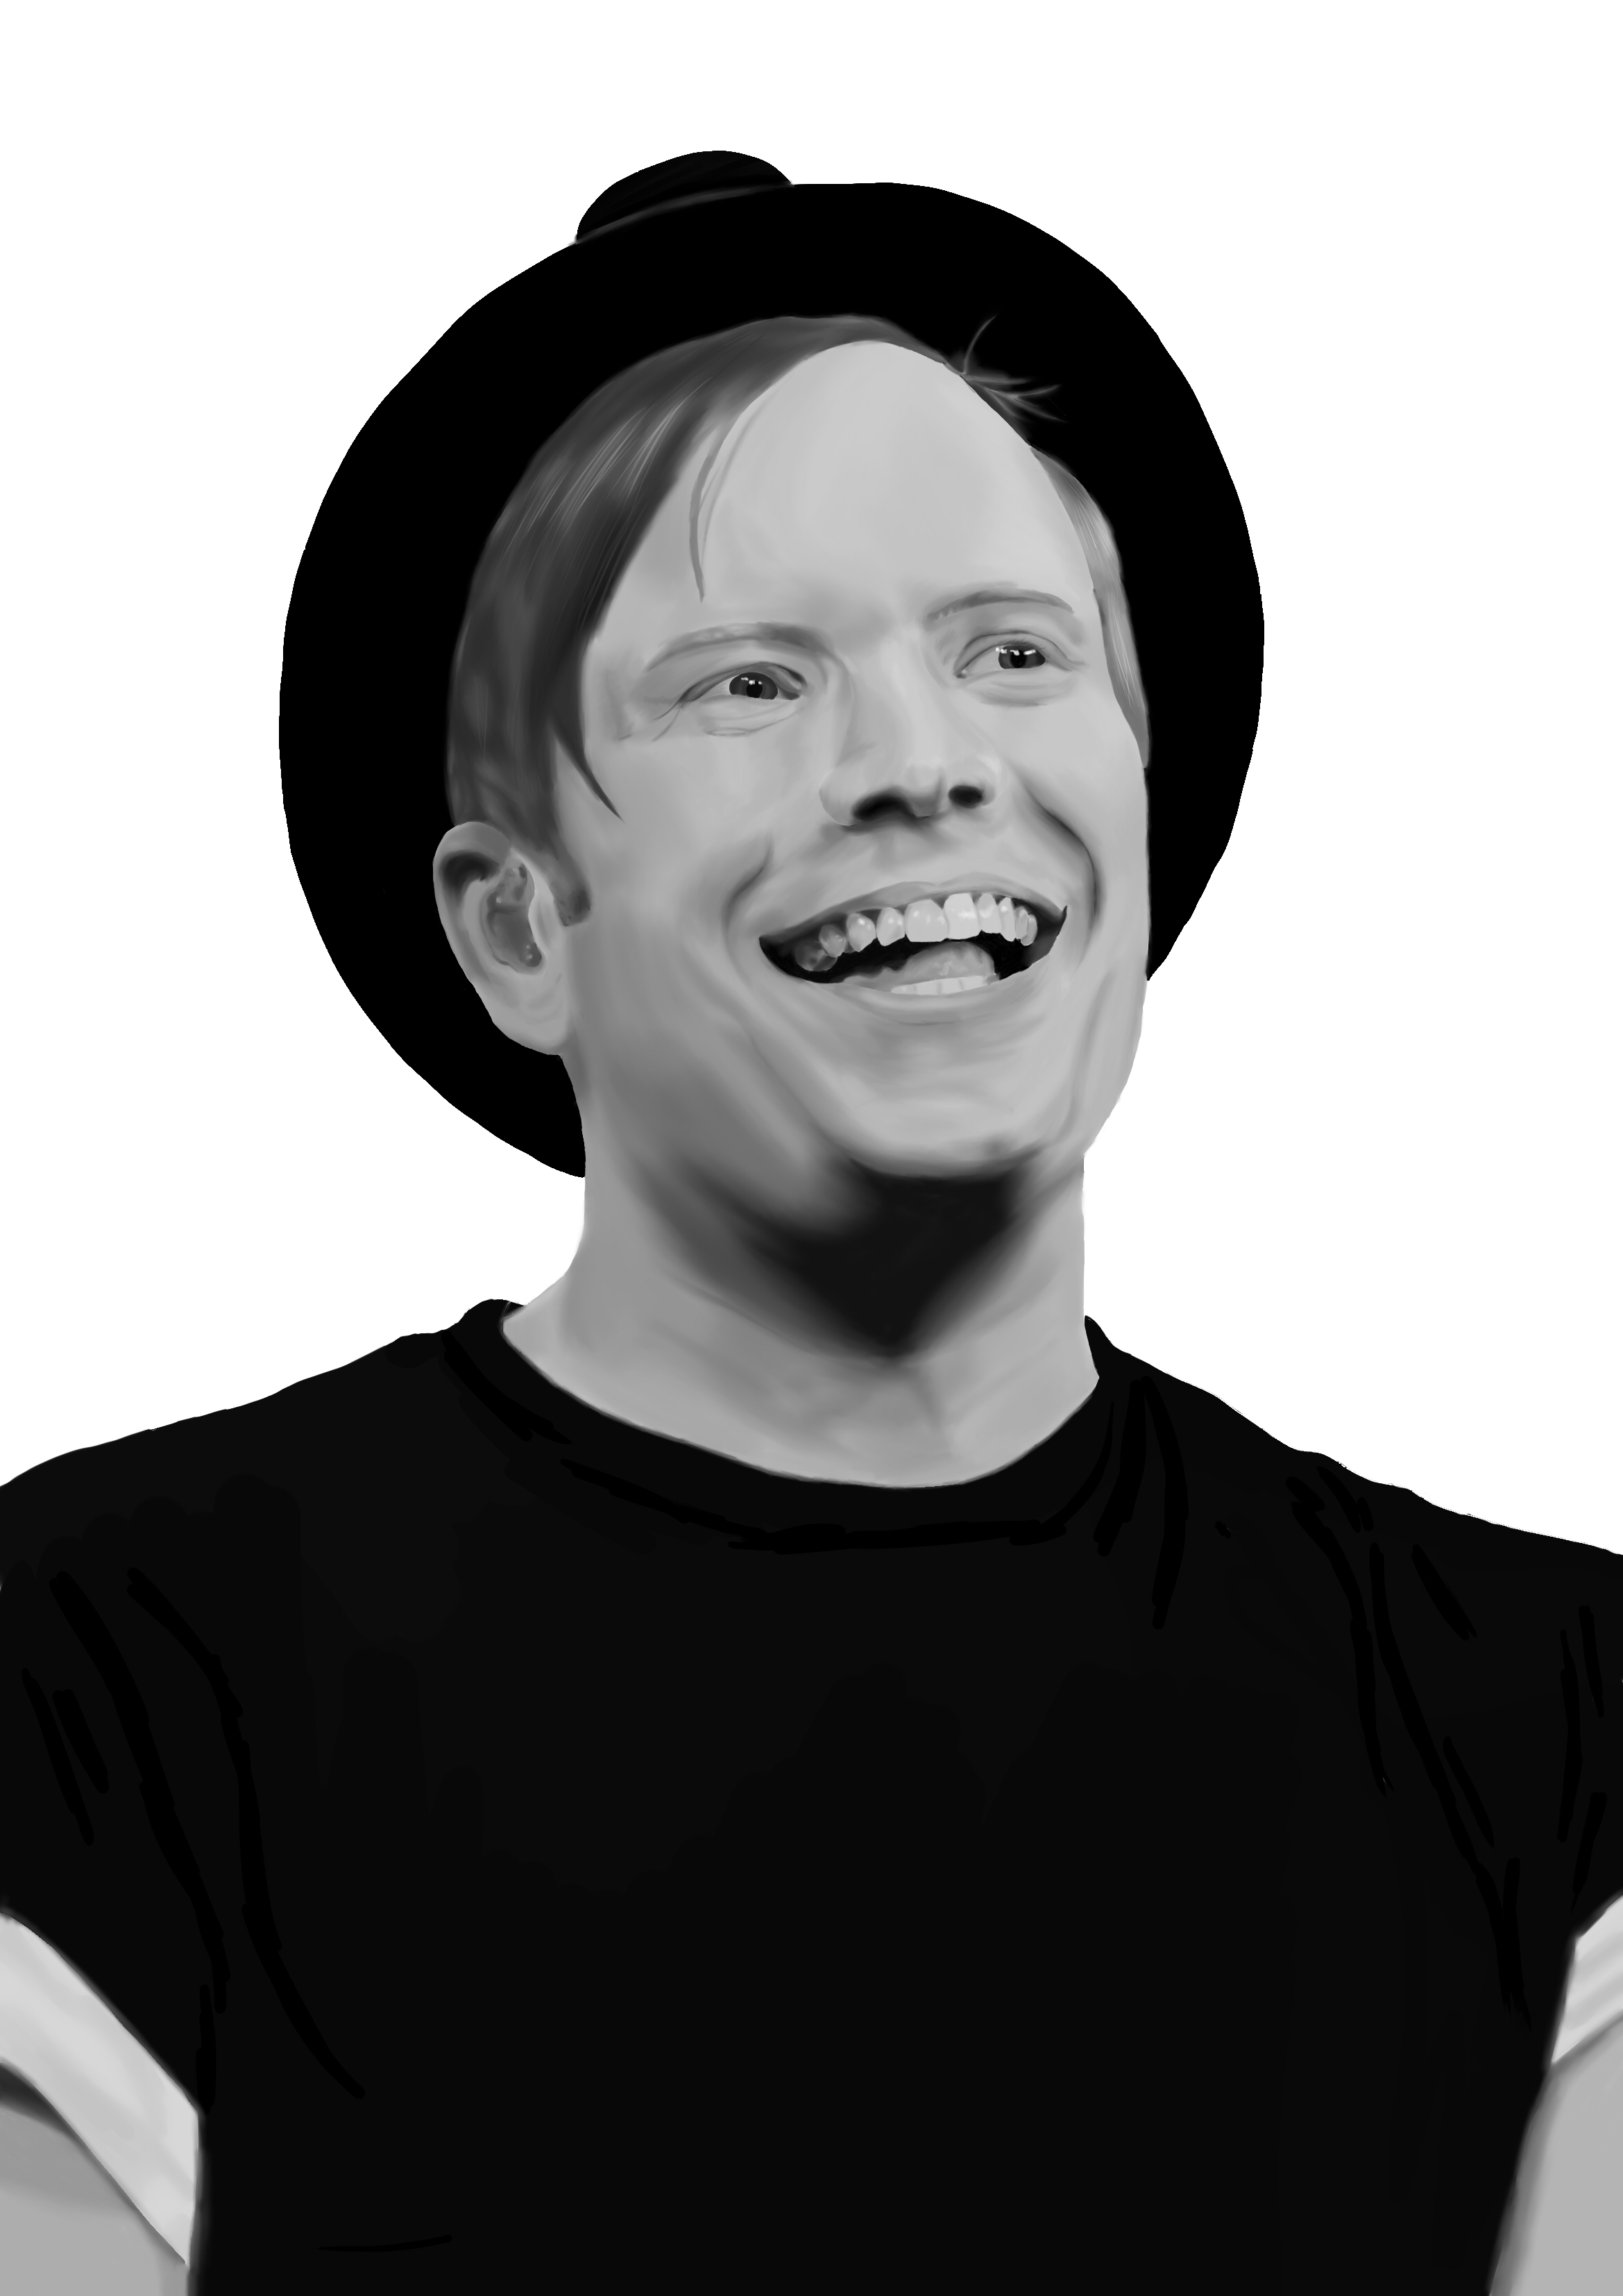 patrick stump who's the (batman на русском